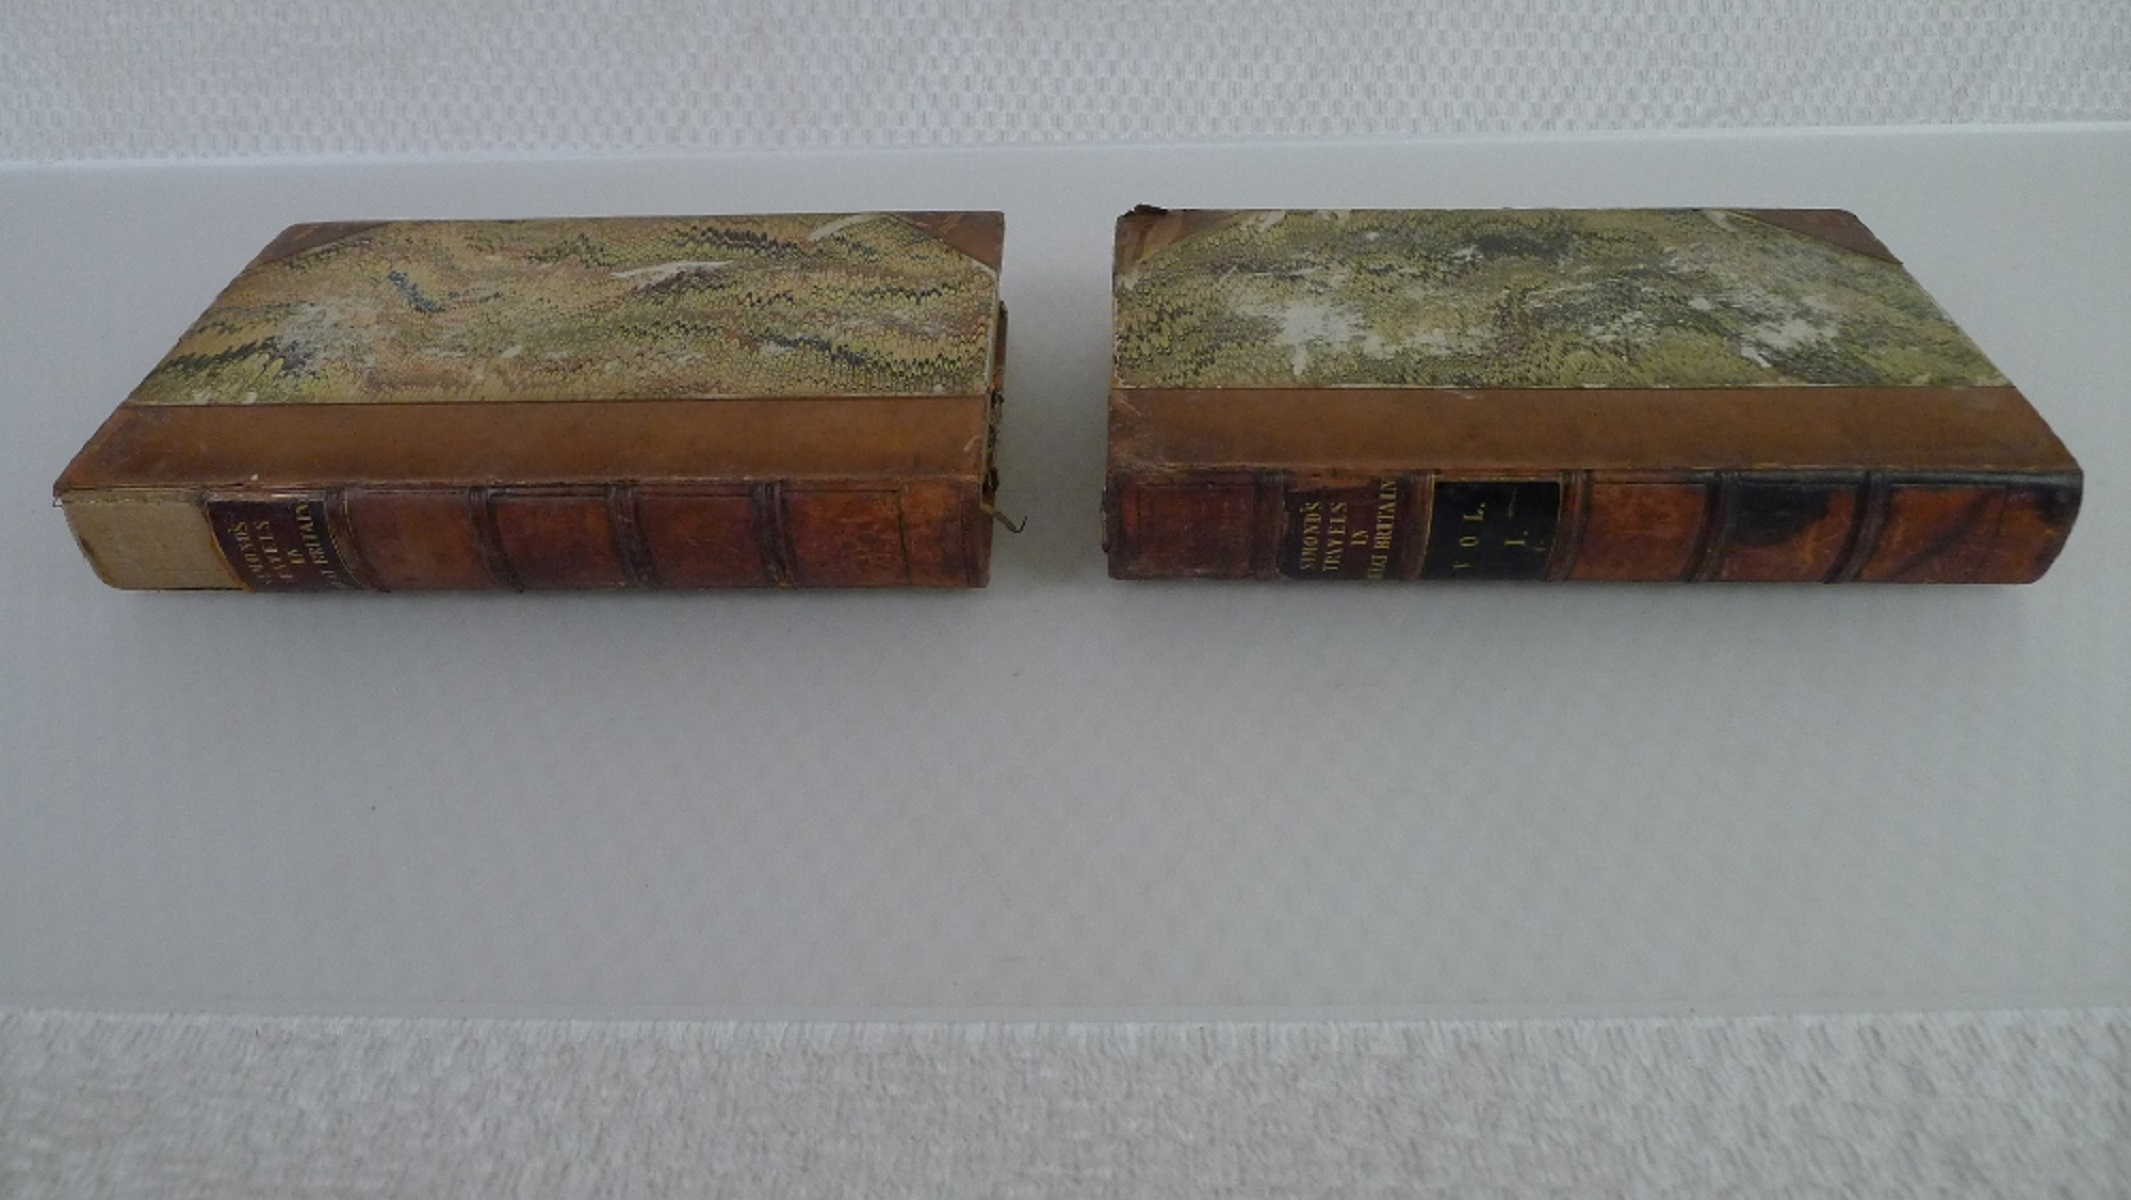 Simond's Travels in Great Britain Volumes I and II, Second Edition published in 1817, being a - Image 2 of 9